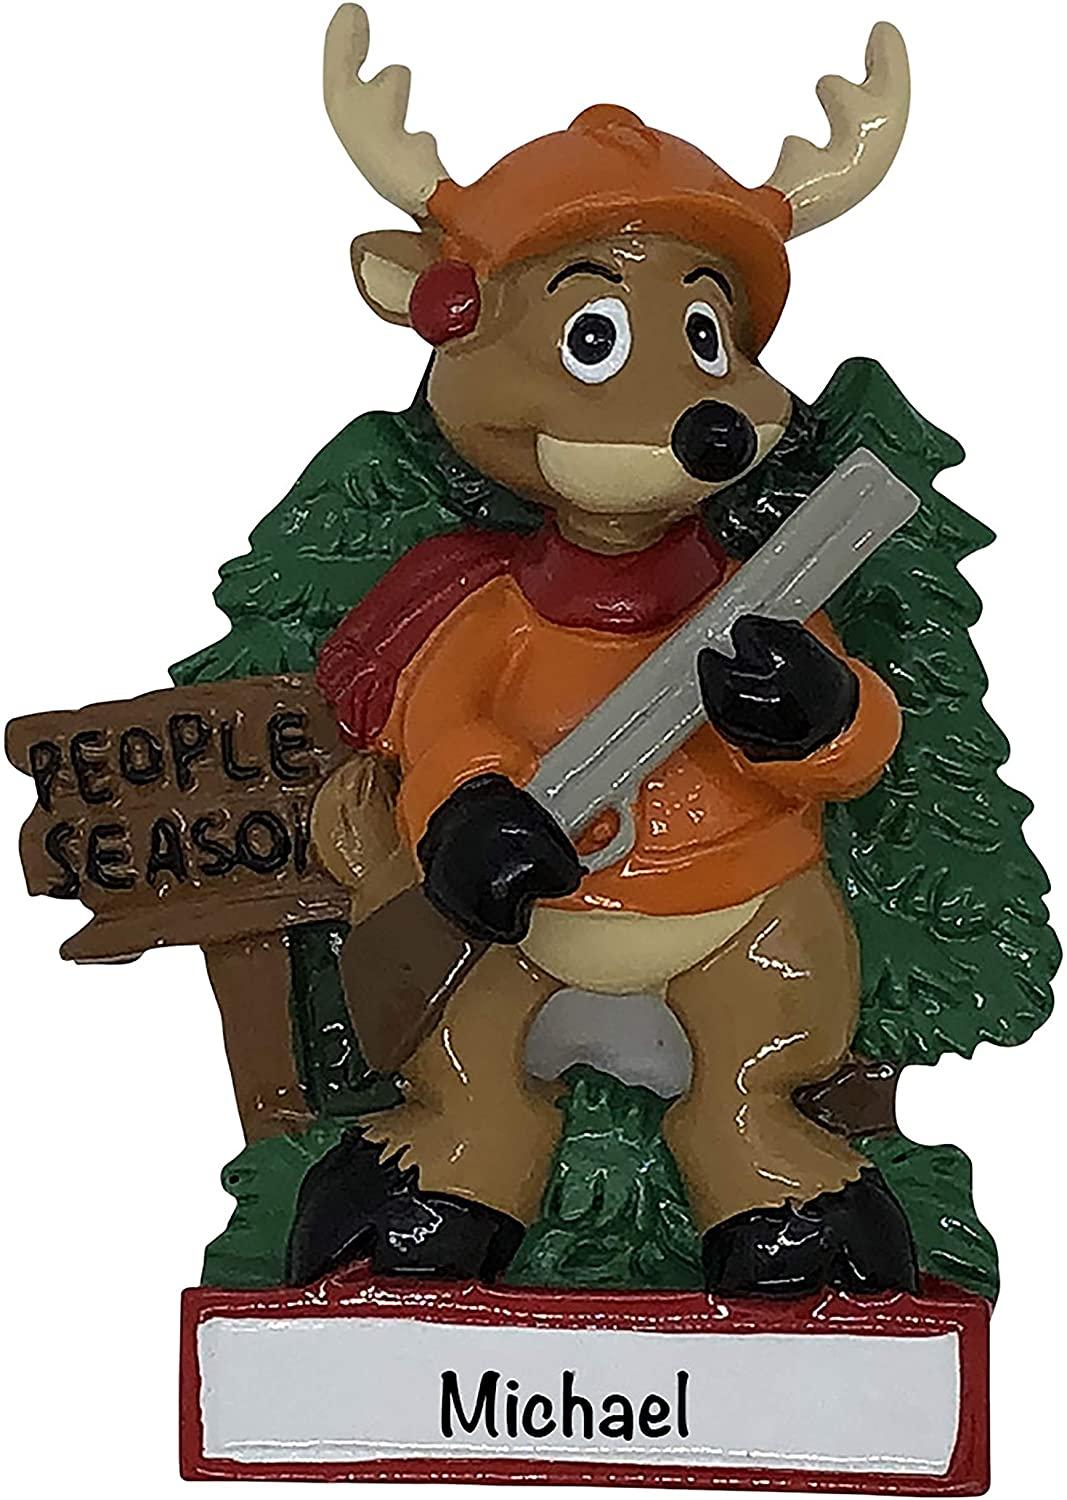 HolidayTraditions Hunting People Season Personalized Ornament - Unique Christmas Tree Ornament - Special Keepsake - Custom Sports Decoration - Personalization Included